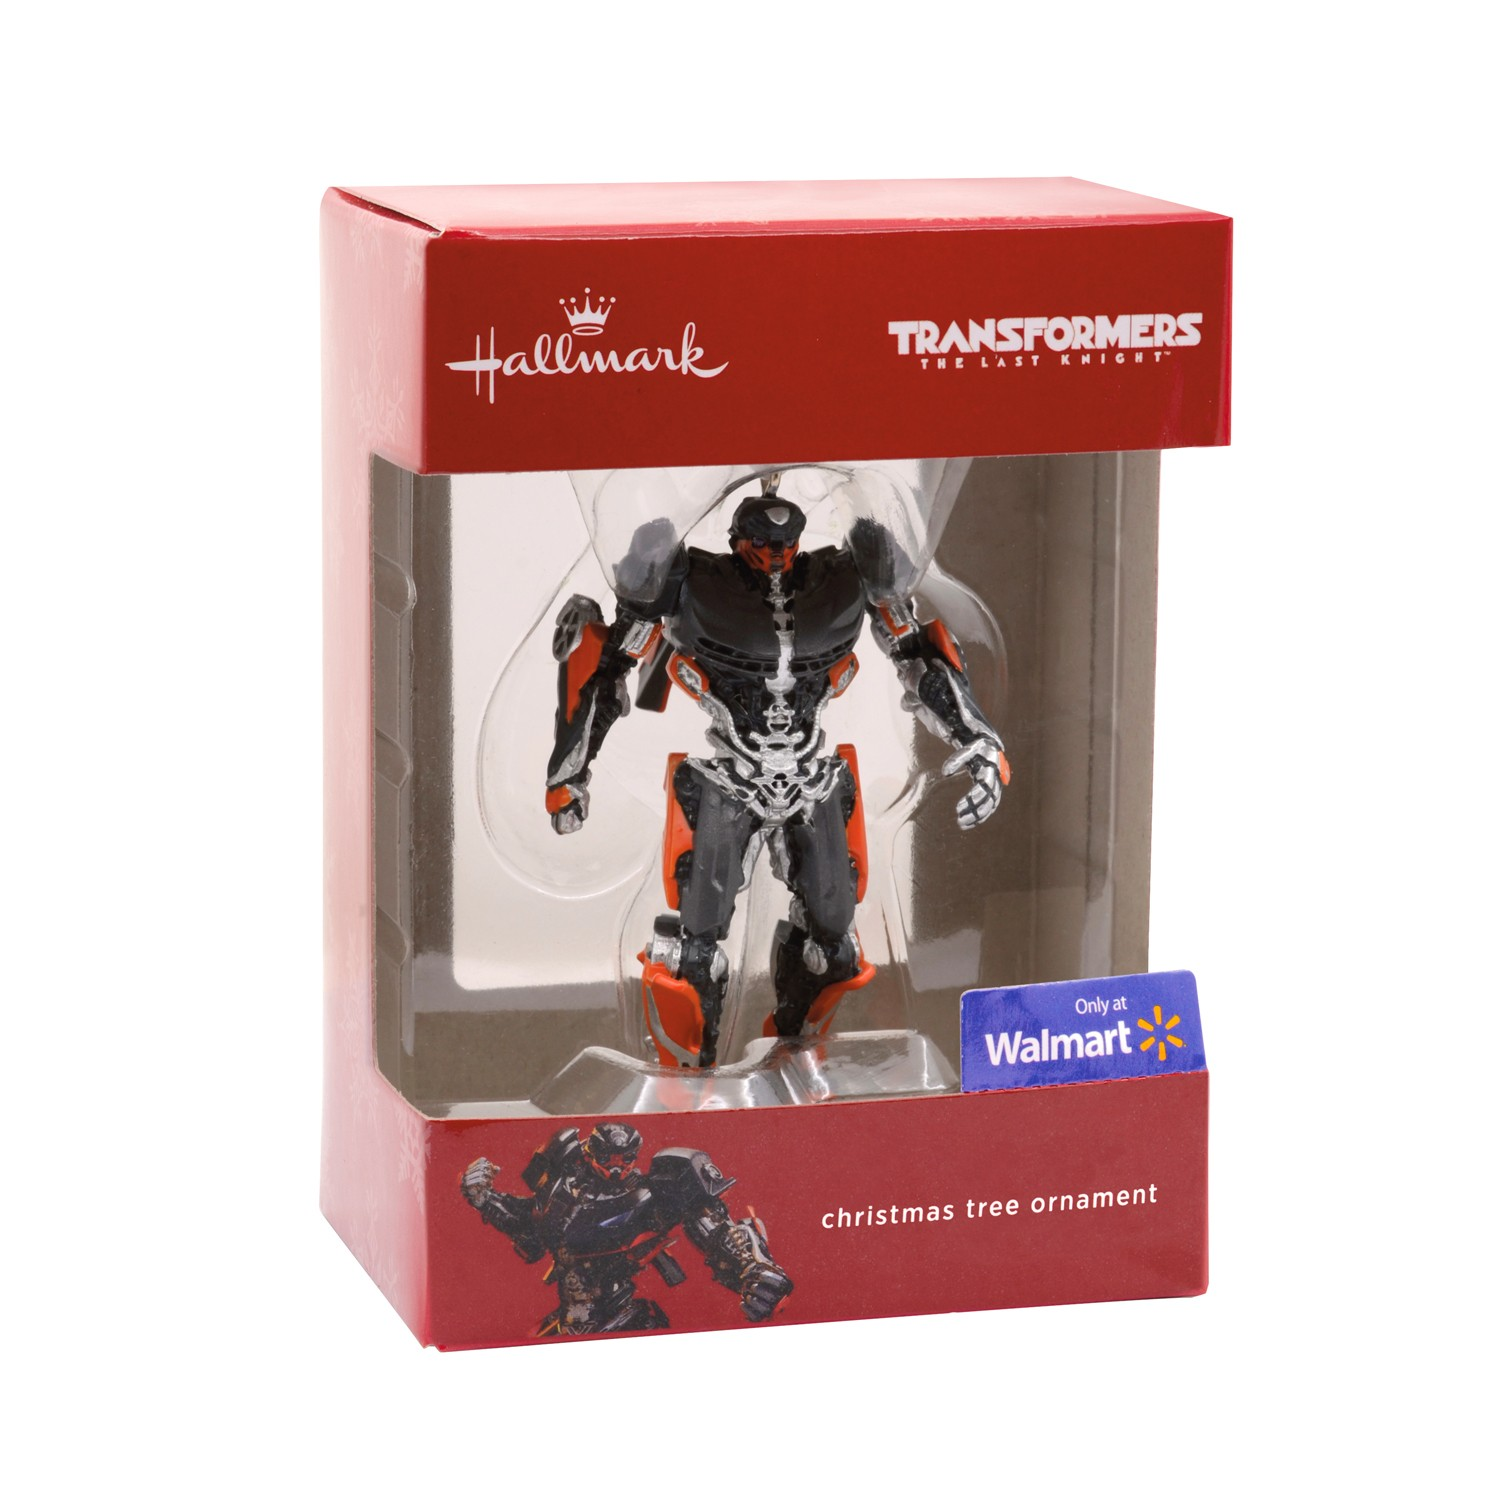 Transformers News: Transformers: The Last Knight Hot Rod Christmas Ornament Announced